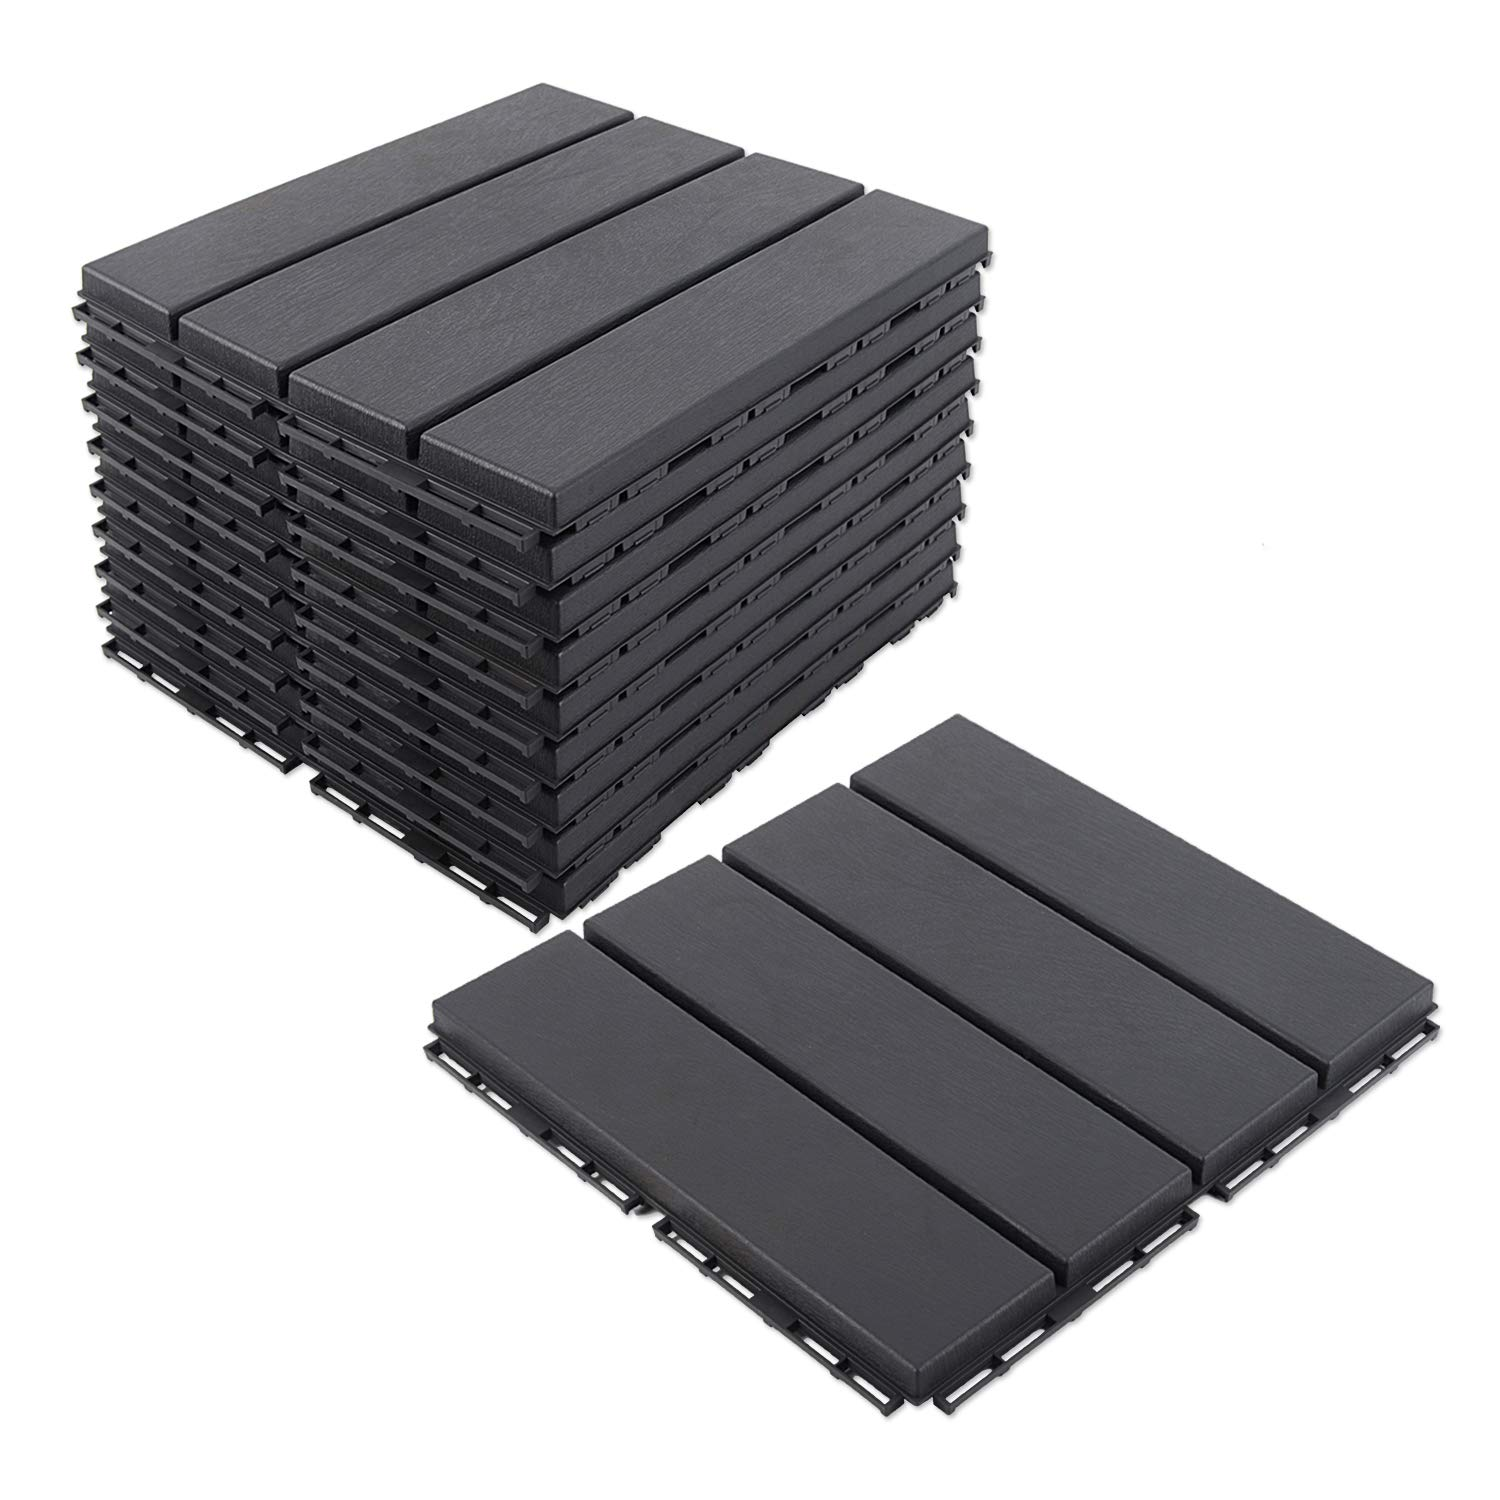 DOMI OUTDOOR LIVING Composite Deck Tiles for Deck and Balcony 9 Pieces One Pack, Dark Grey